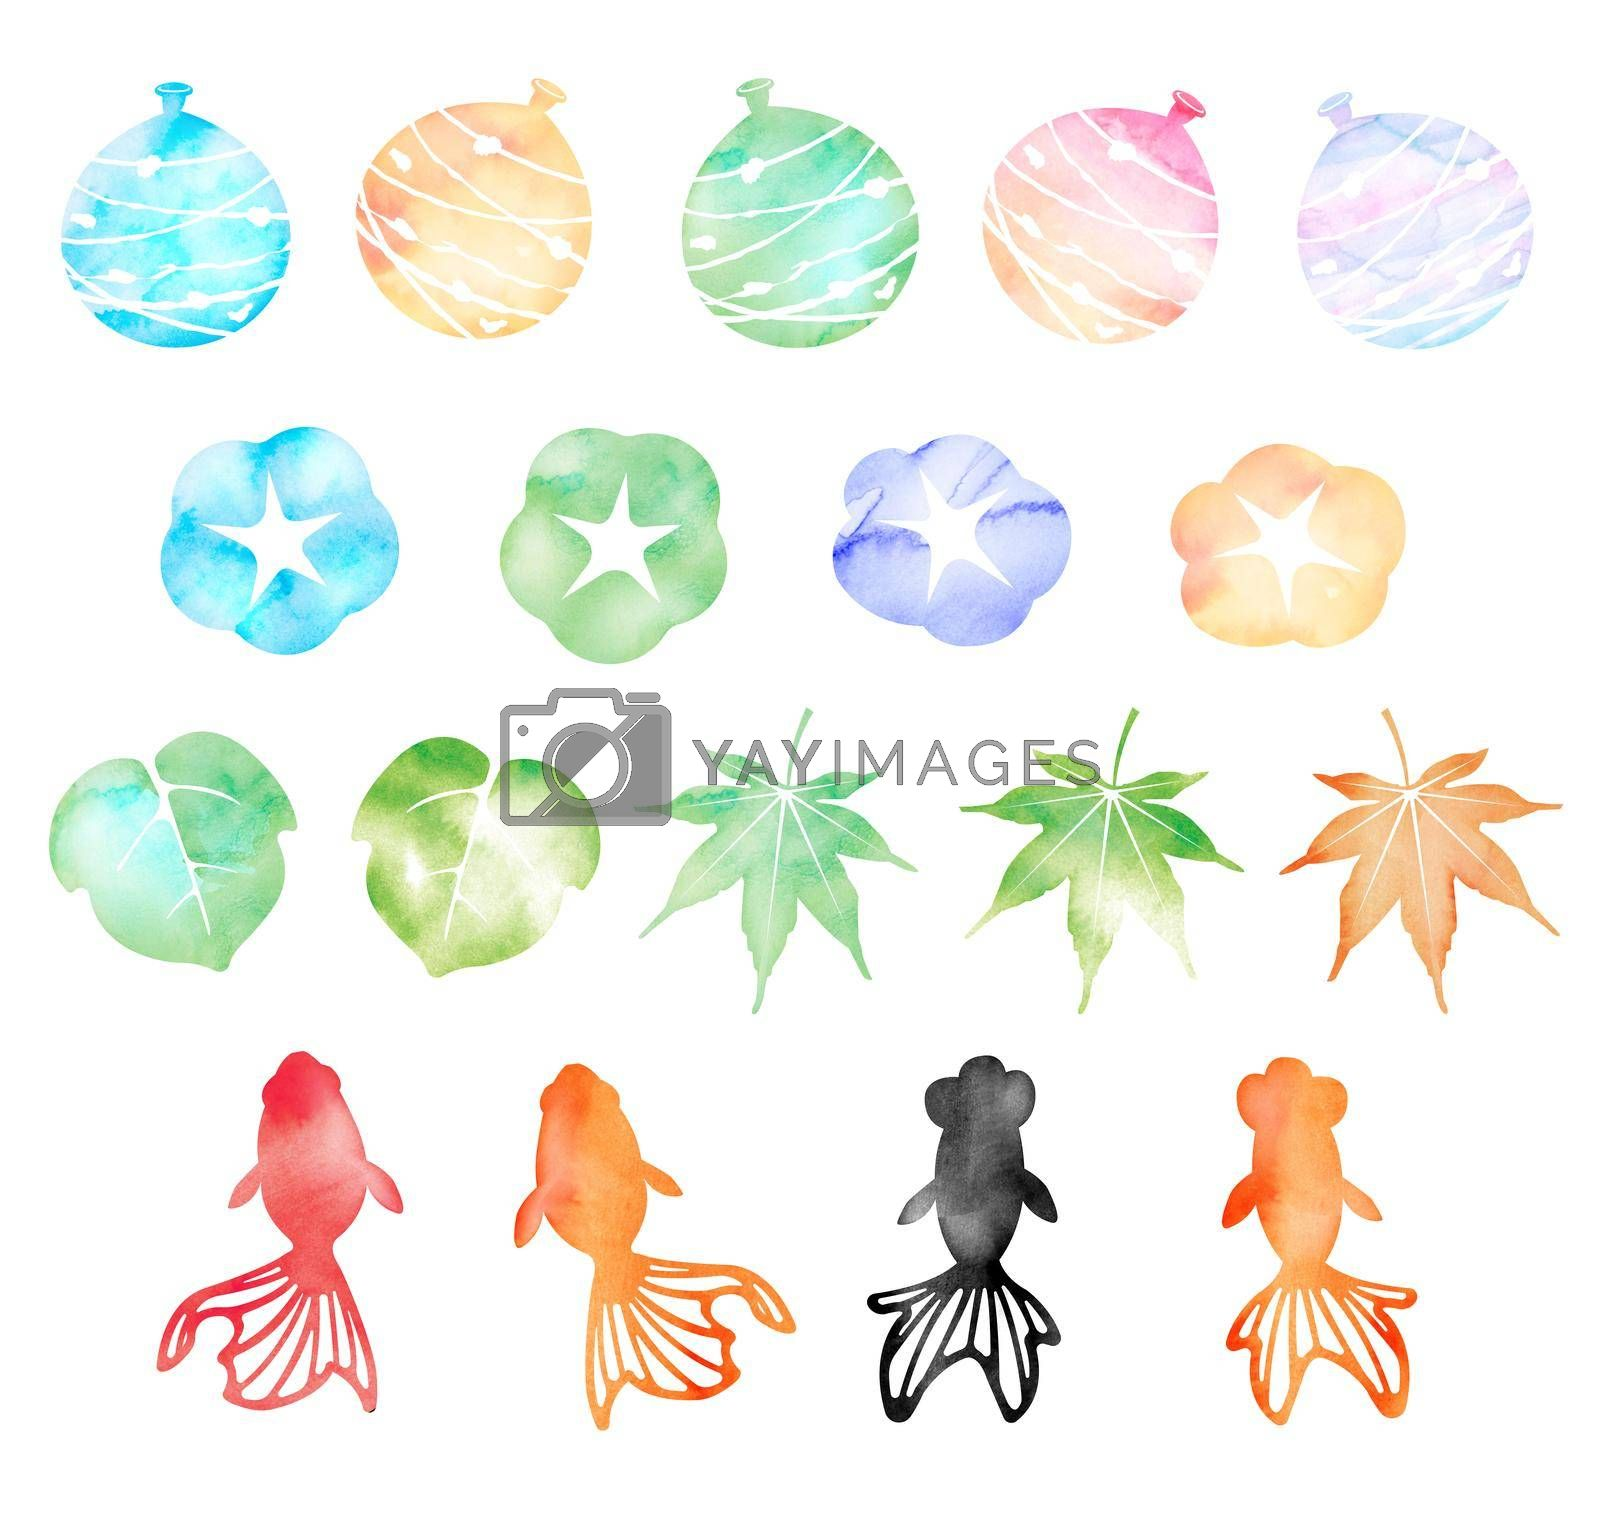 Royalty free image of Summer motif watercolor painting illustration set for summer greeting card etc.  by barks